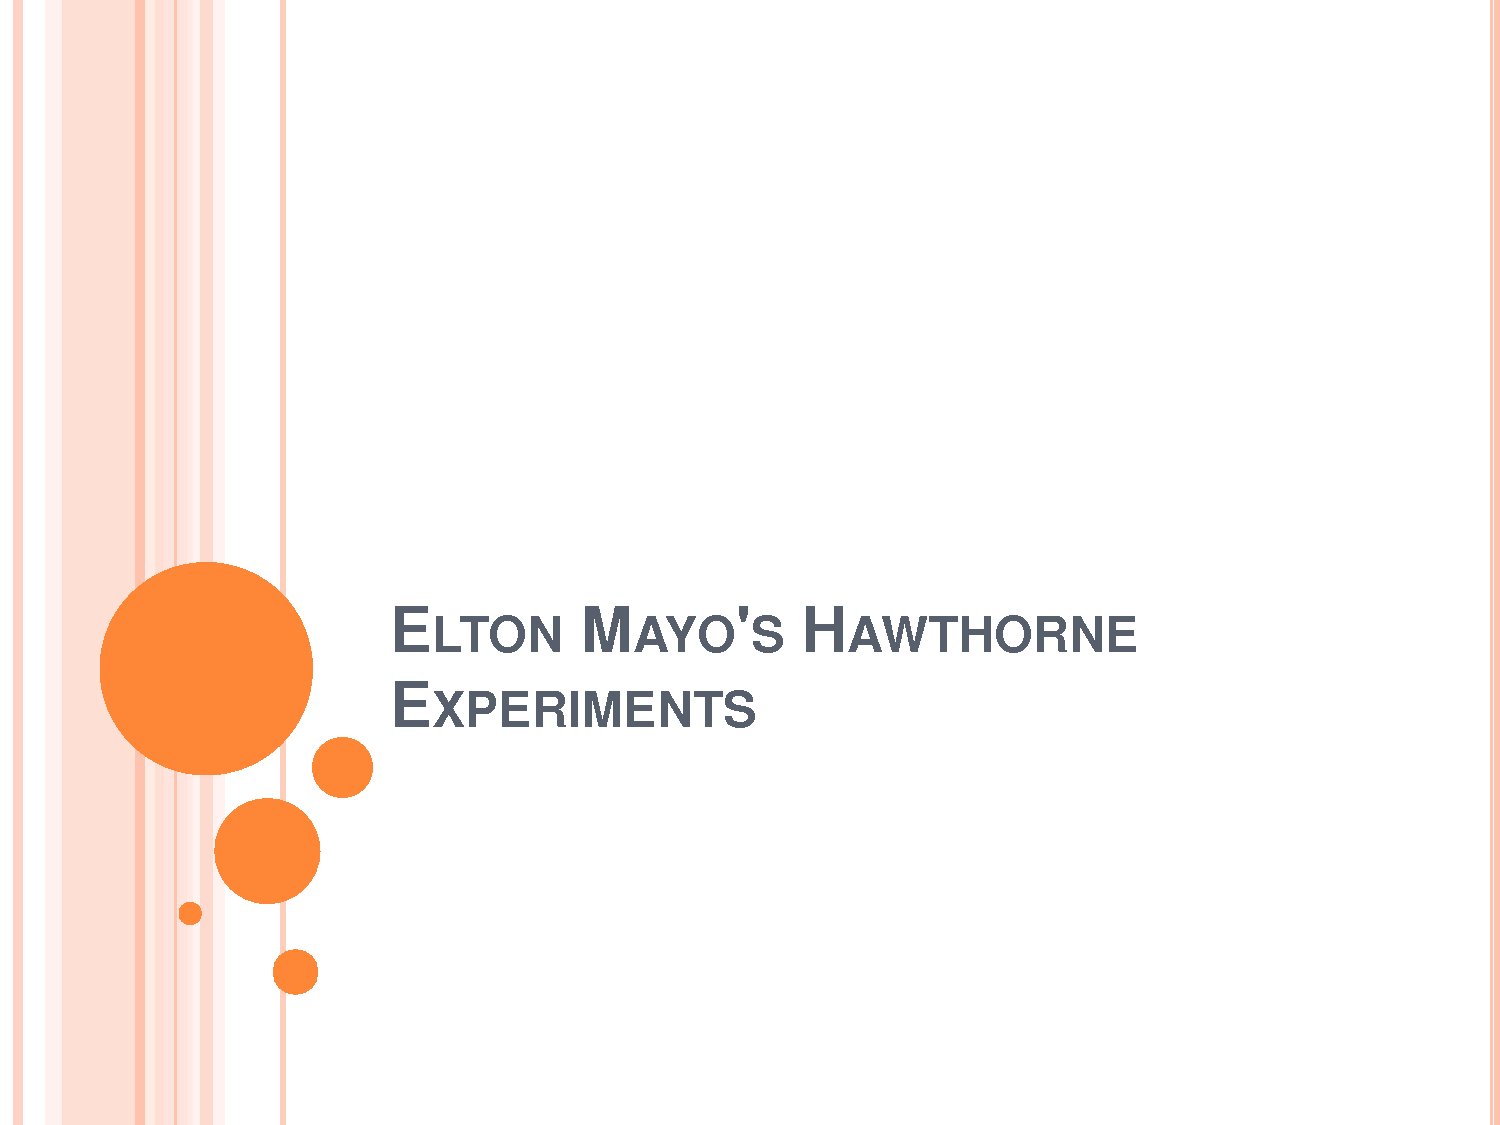 The hawthorne experiments essay